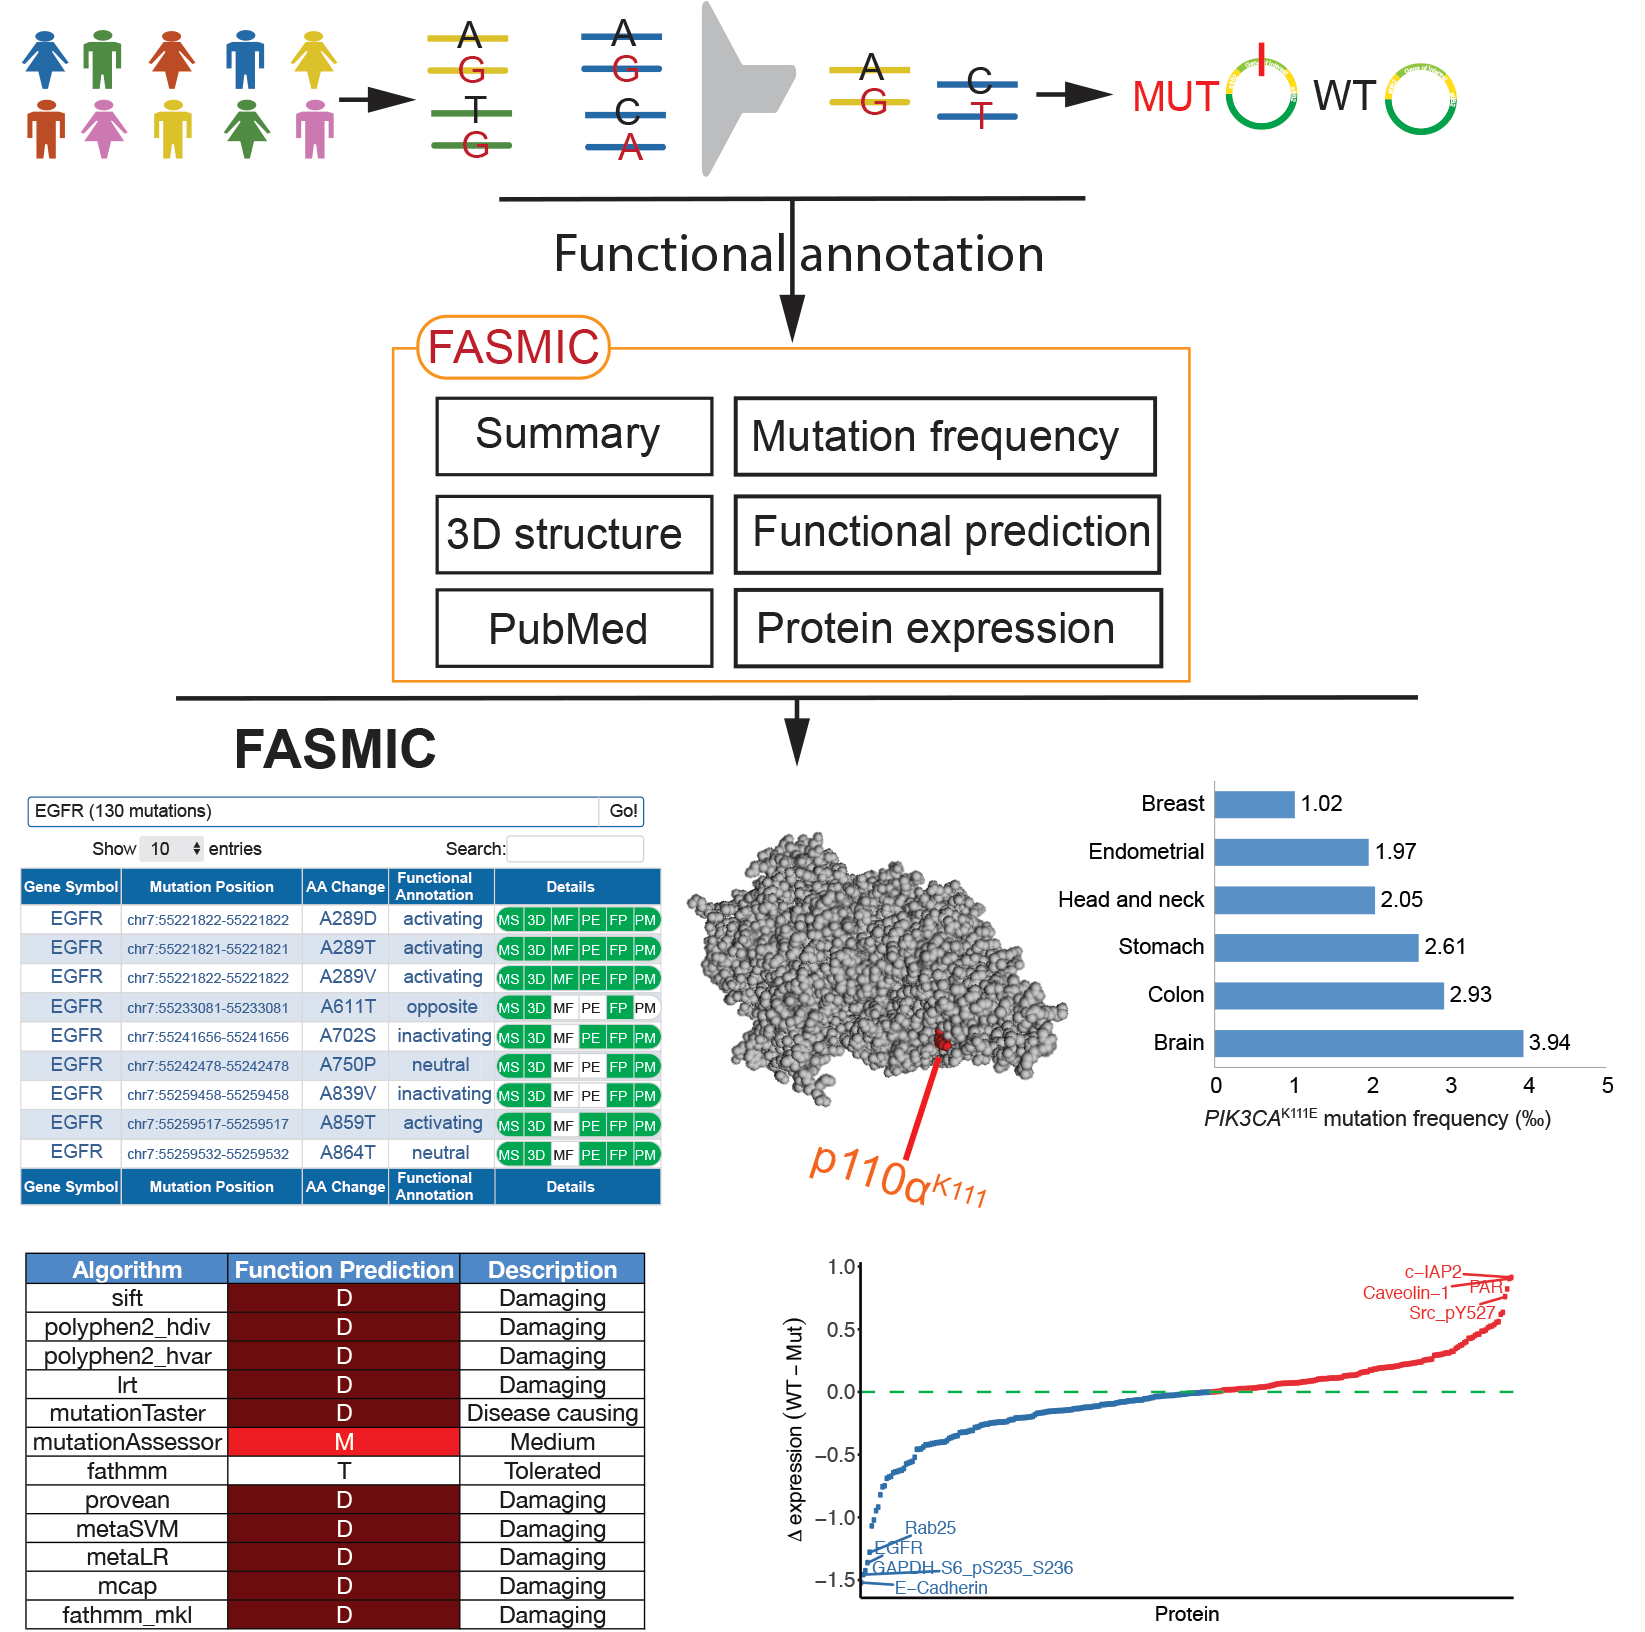 Overview of the FASMIC web portal, which can be used for exploring functional effects of cancer somatic mutations